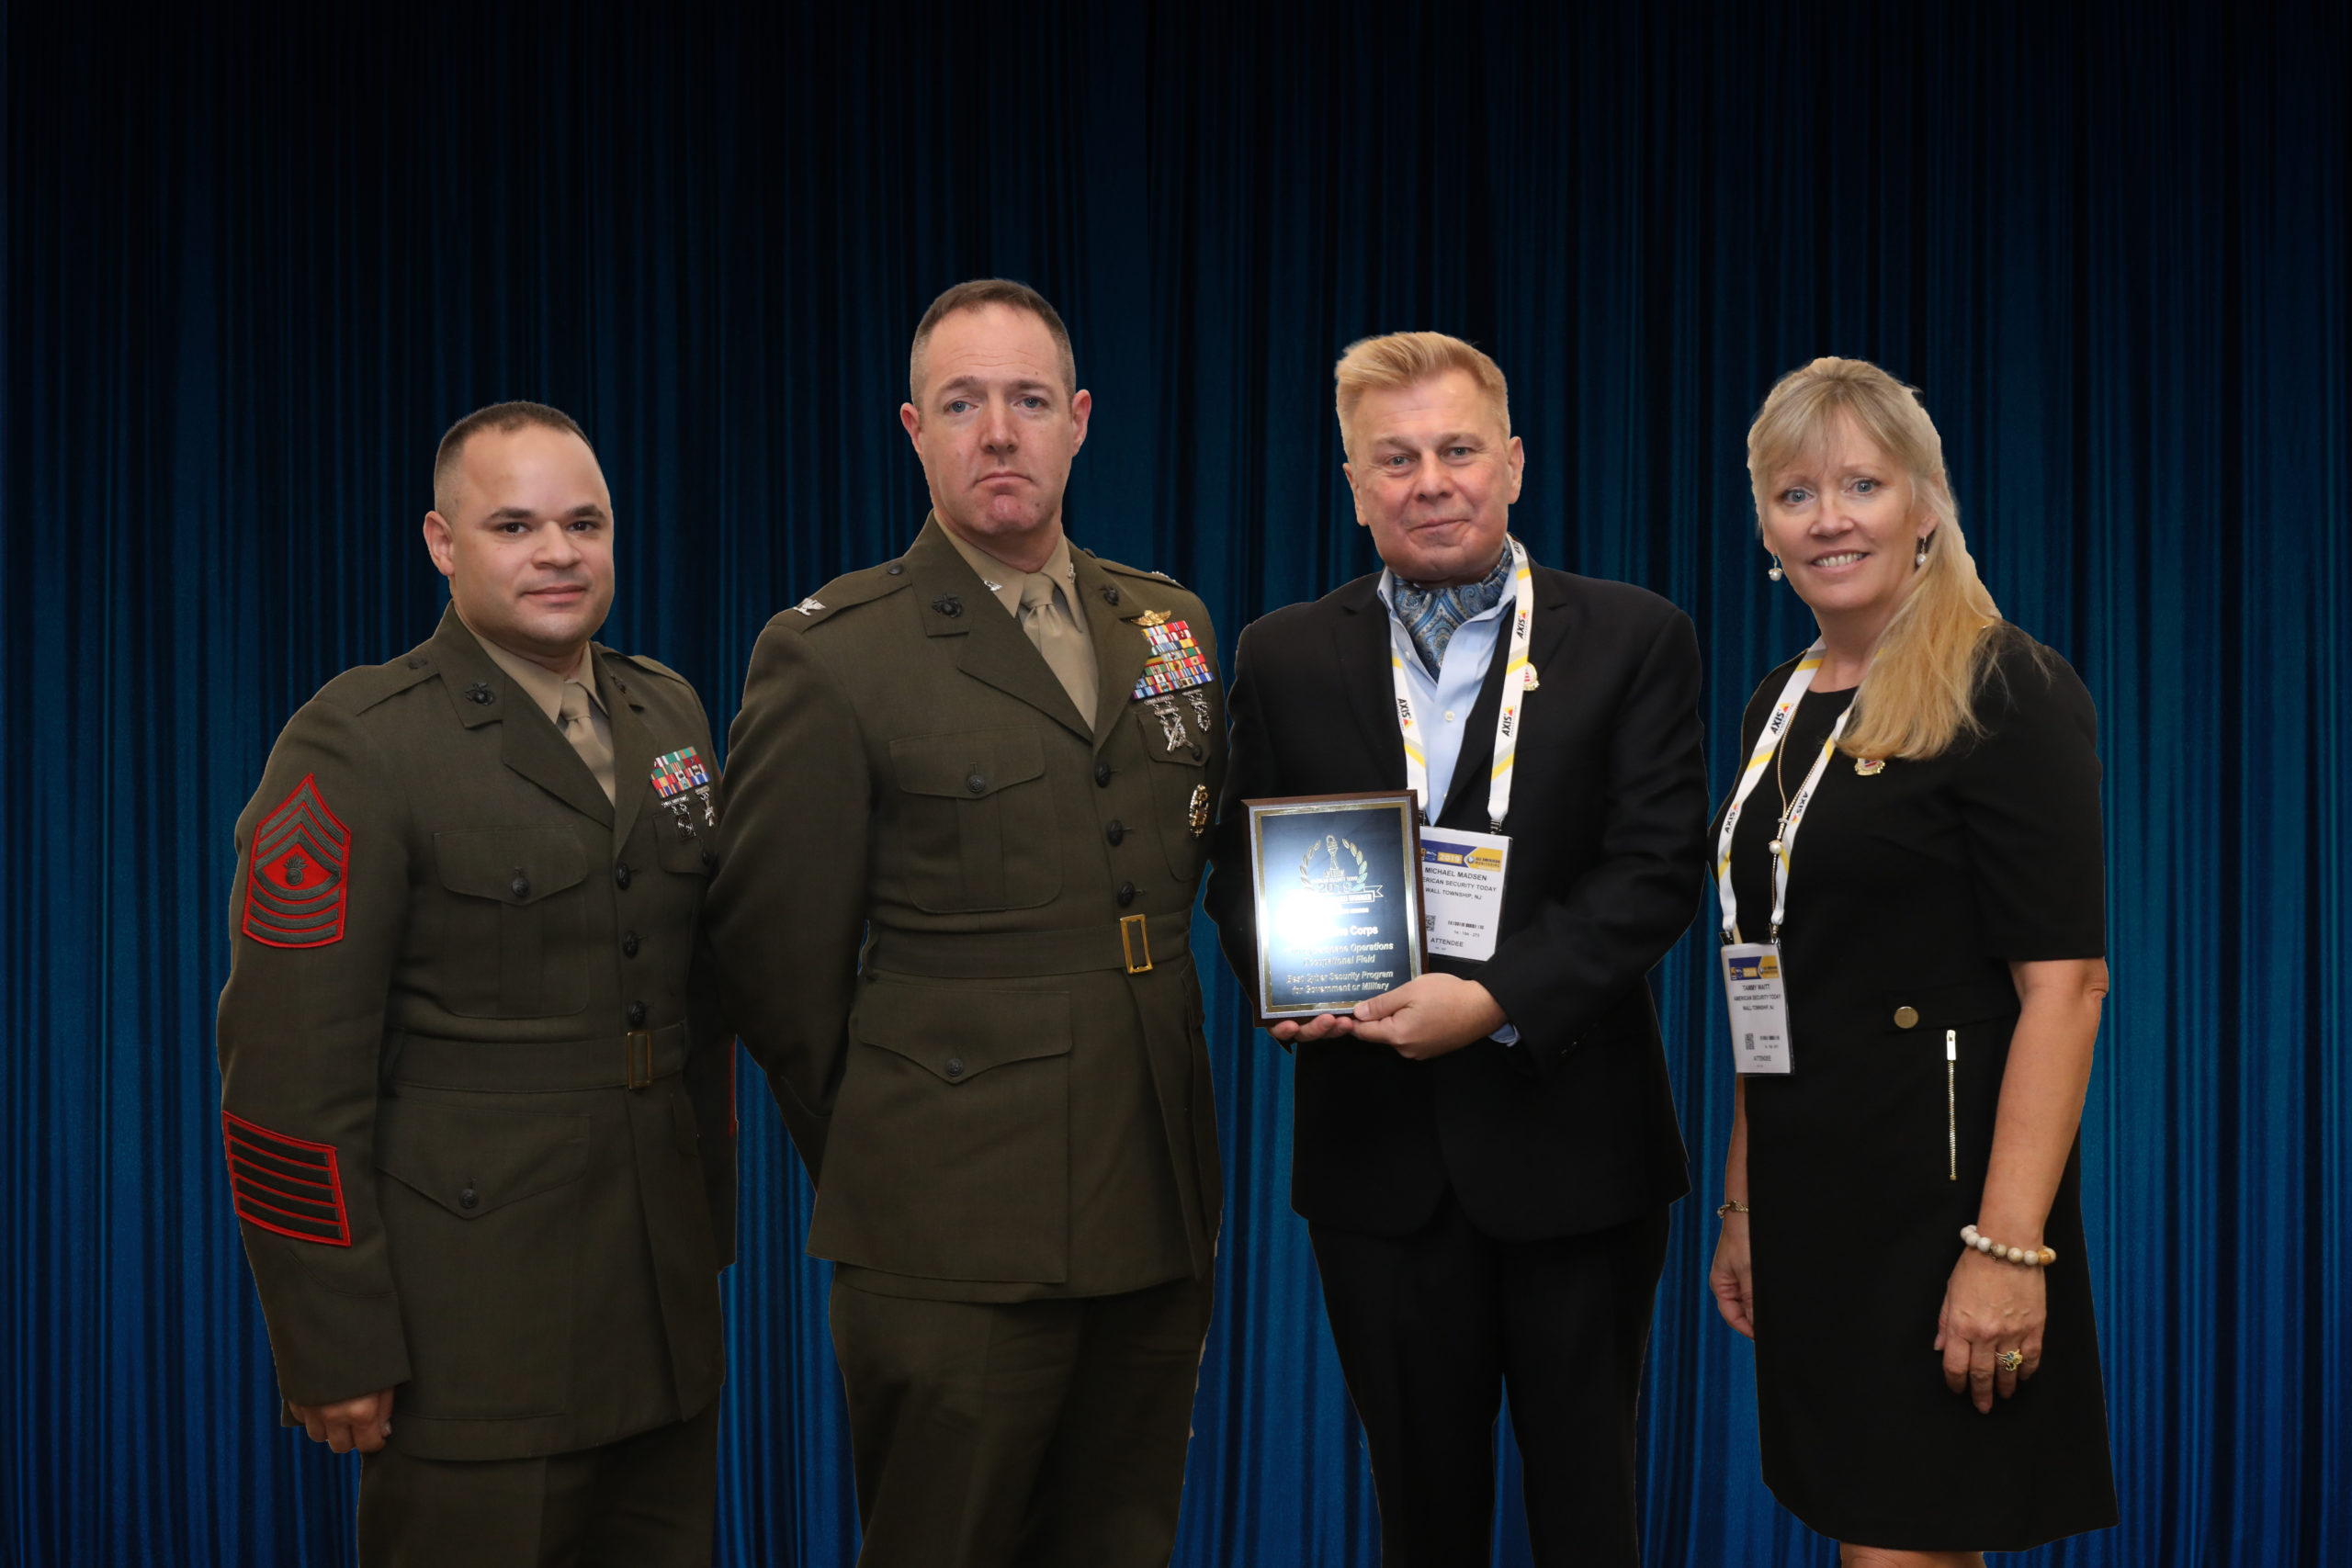 Colonel Seth Milstein and Master Gunnery Sergeant Carlos Torres accepting the 1700 Cyberspace OccFld Platinum 'ASTORS' Award at the 2019 'ASTORS' Awards Luncheon at ISC East.